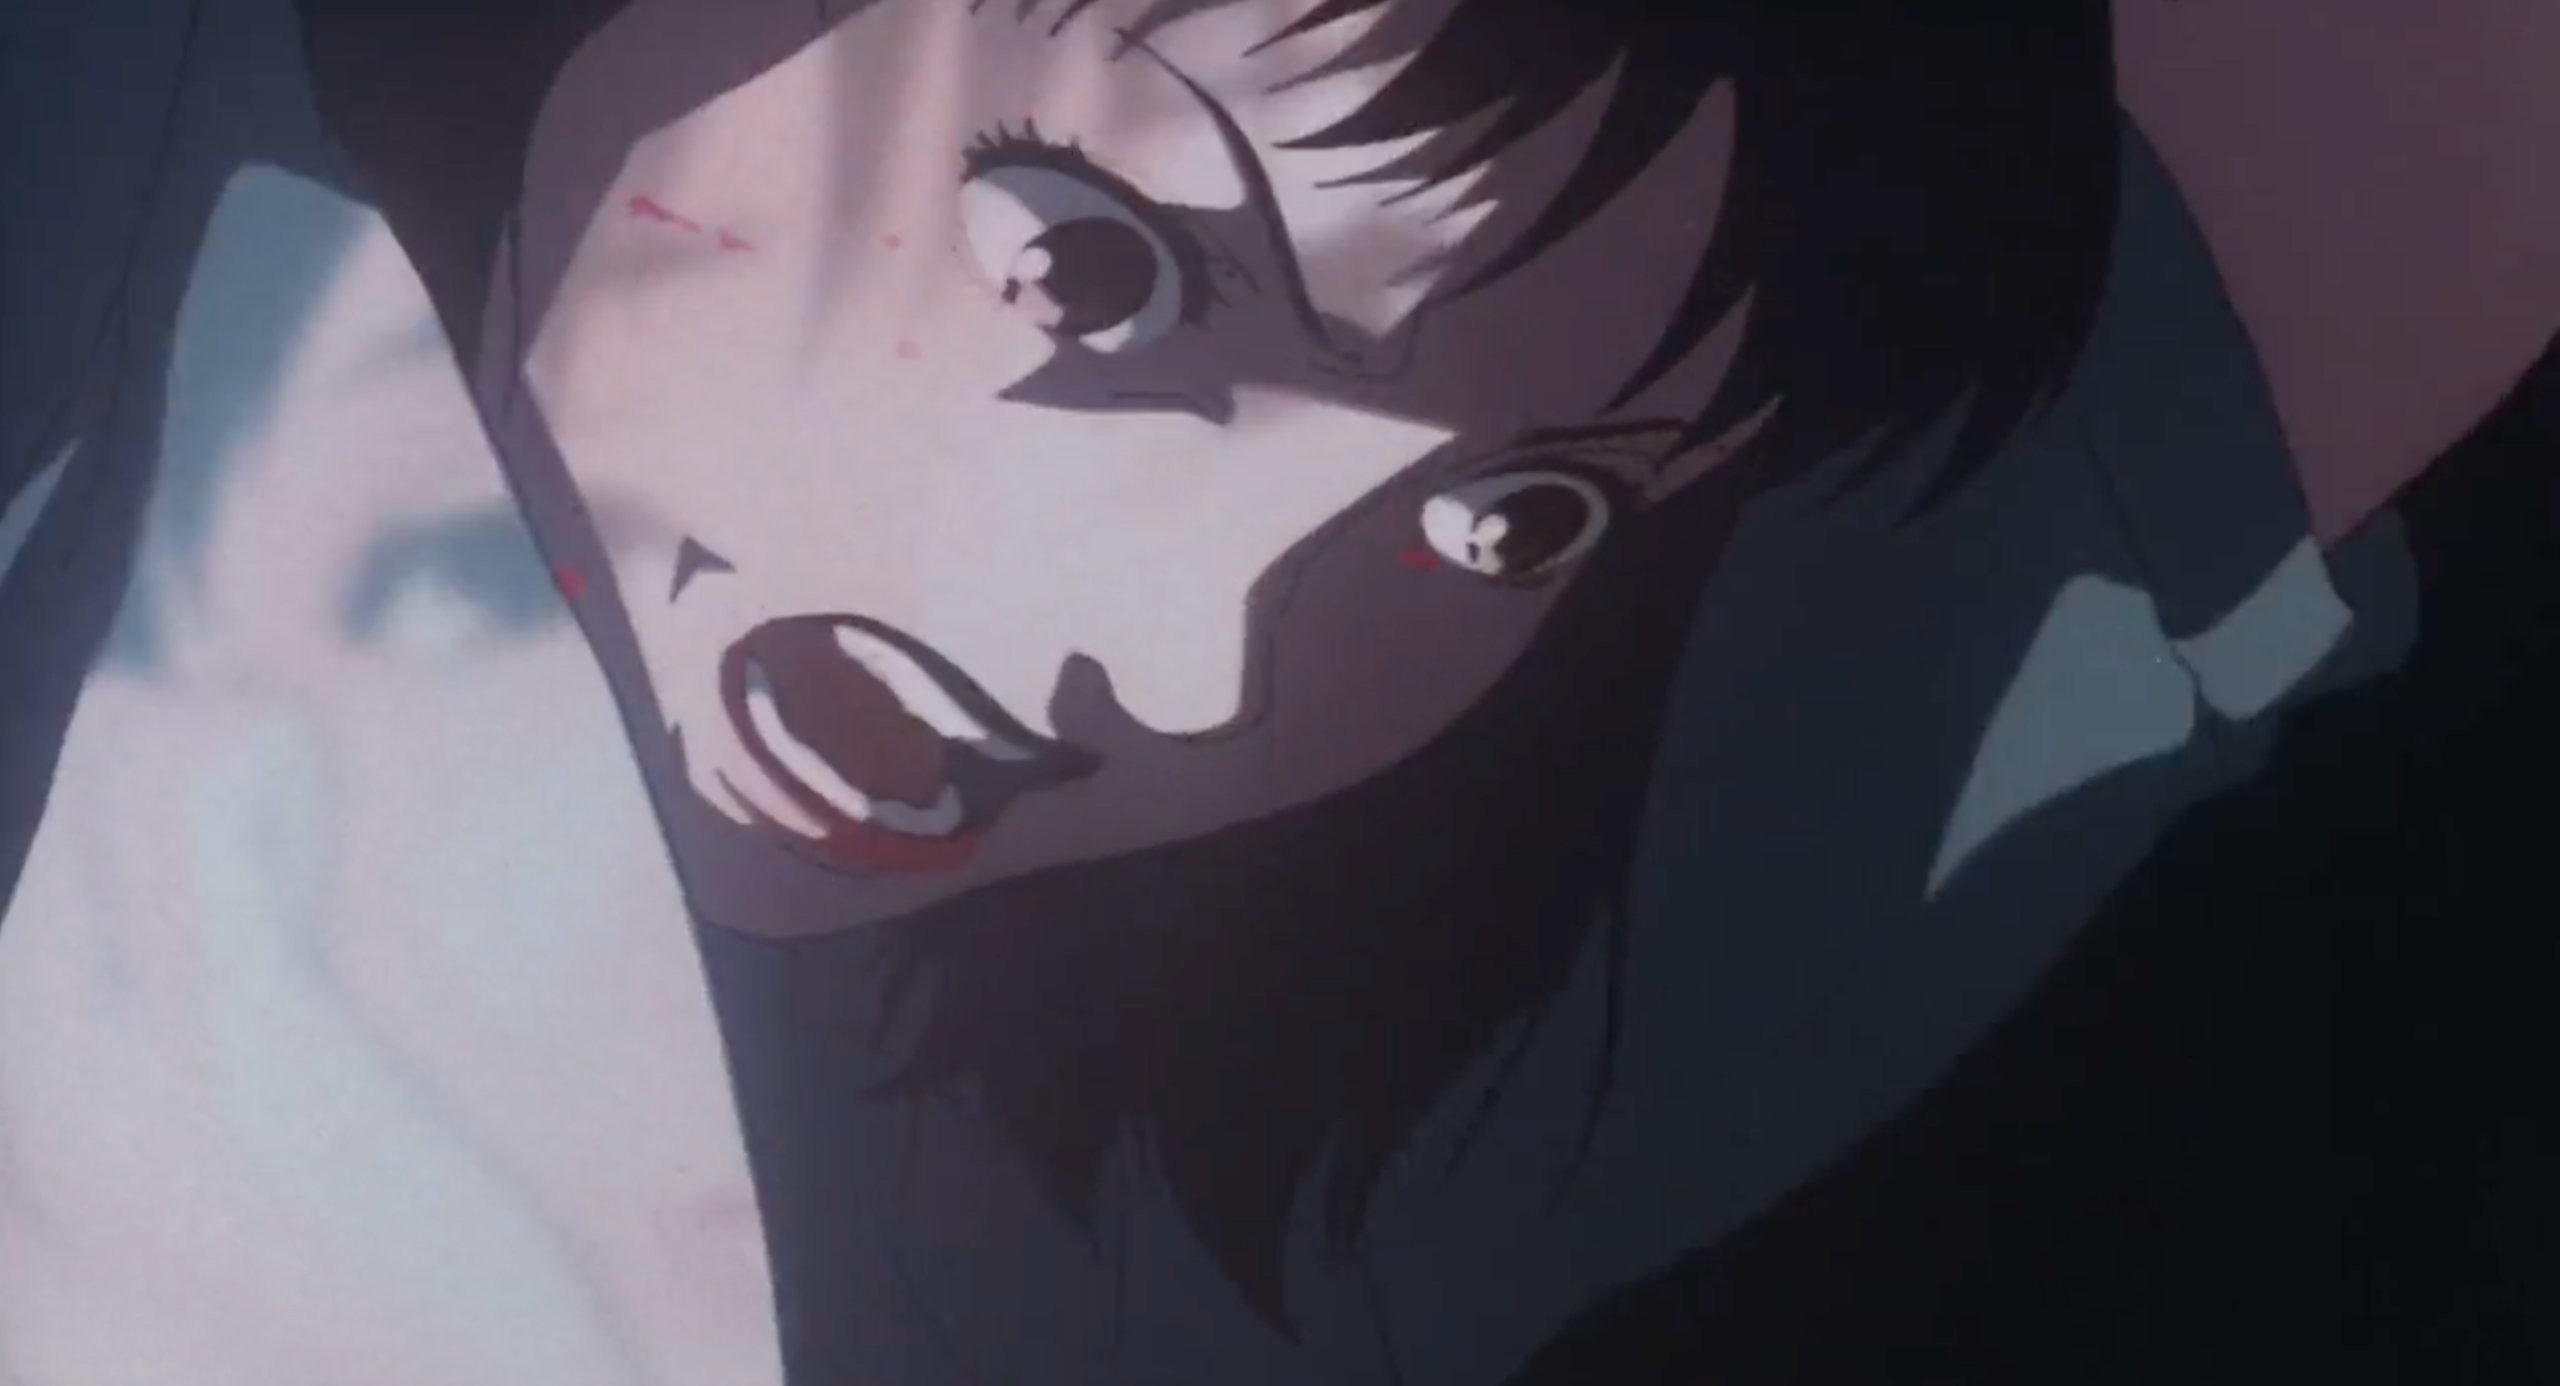 Rumi dressed as Mima stabs the photographer in Perfect Blue